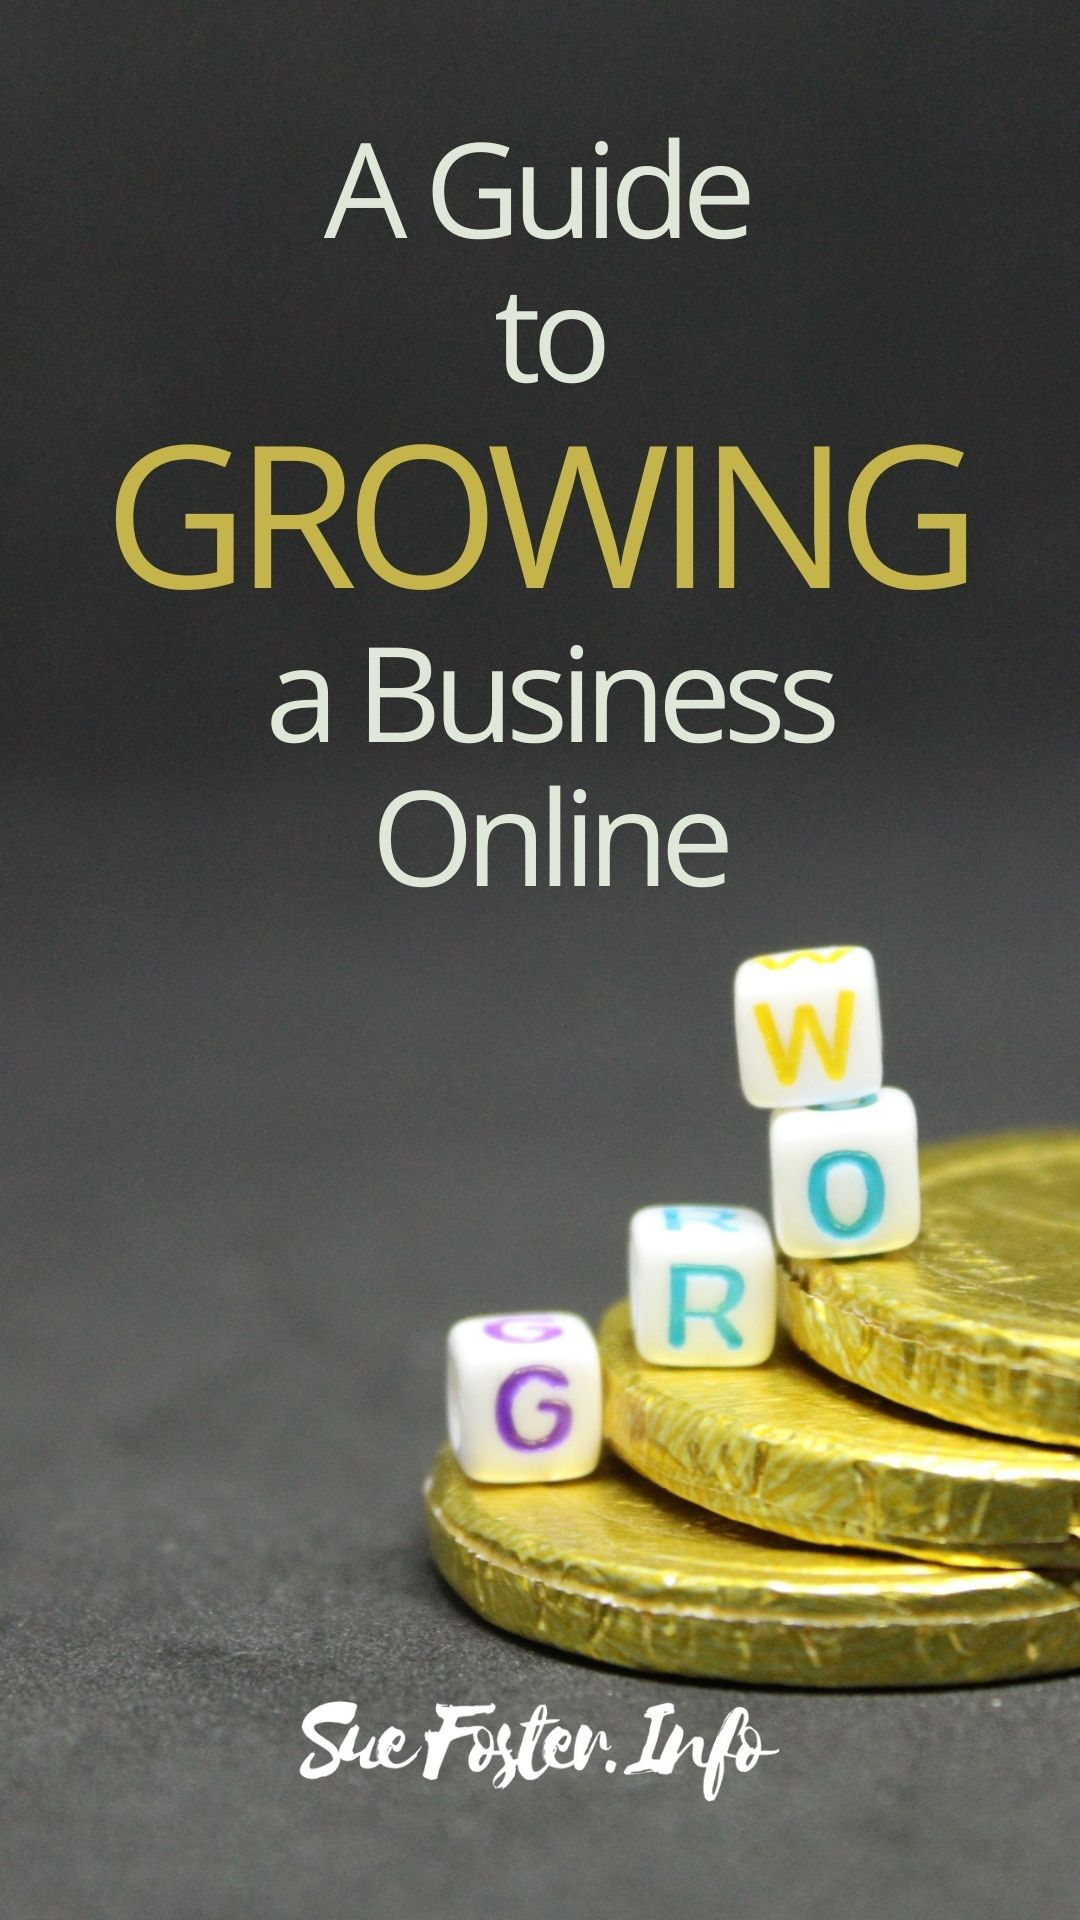 It is recommended for entrepreneurs to expand their businesses online while the pandemic is still ongoing. Read on to learn the important things you need to consider while growing their business online.